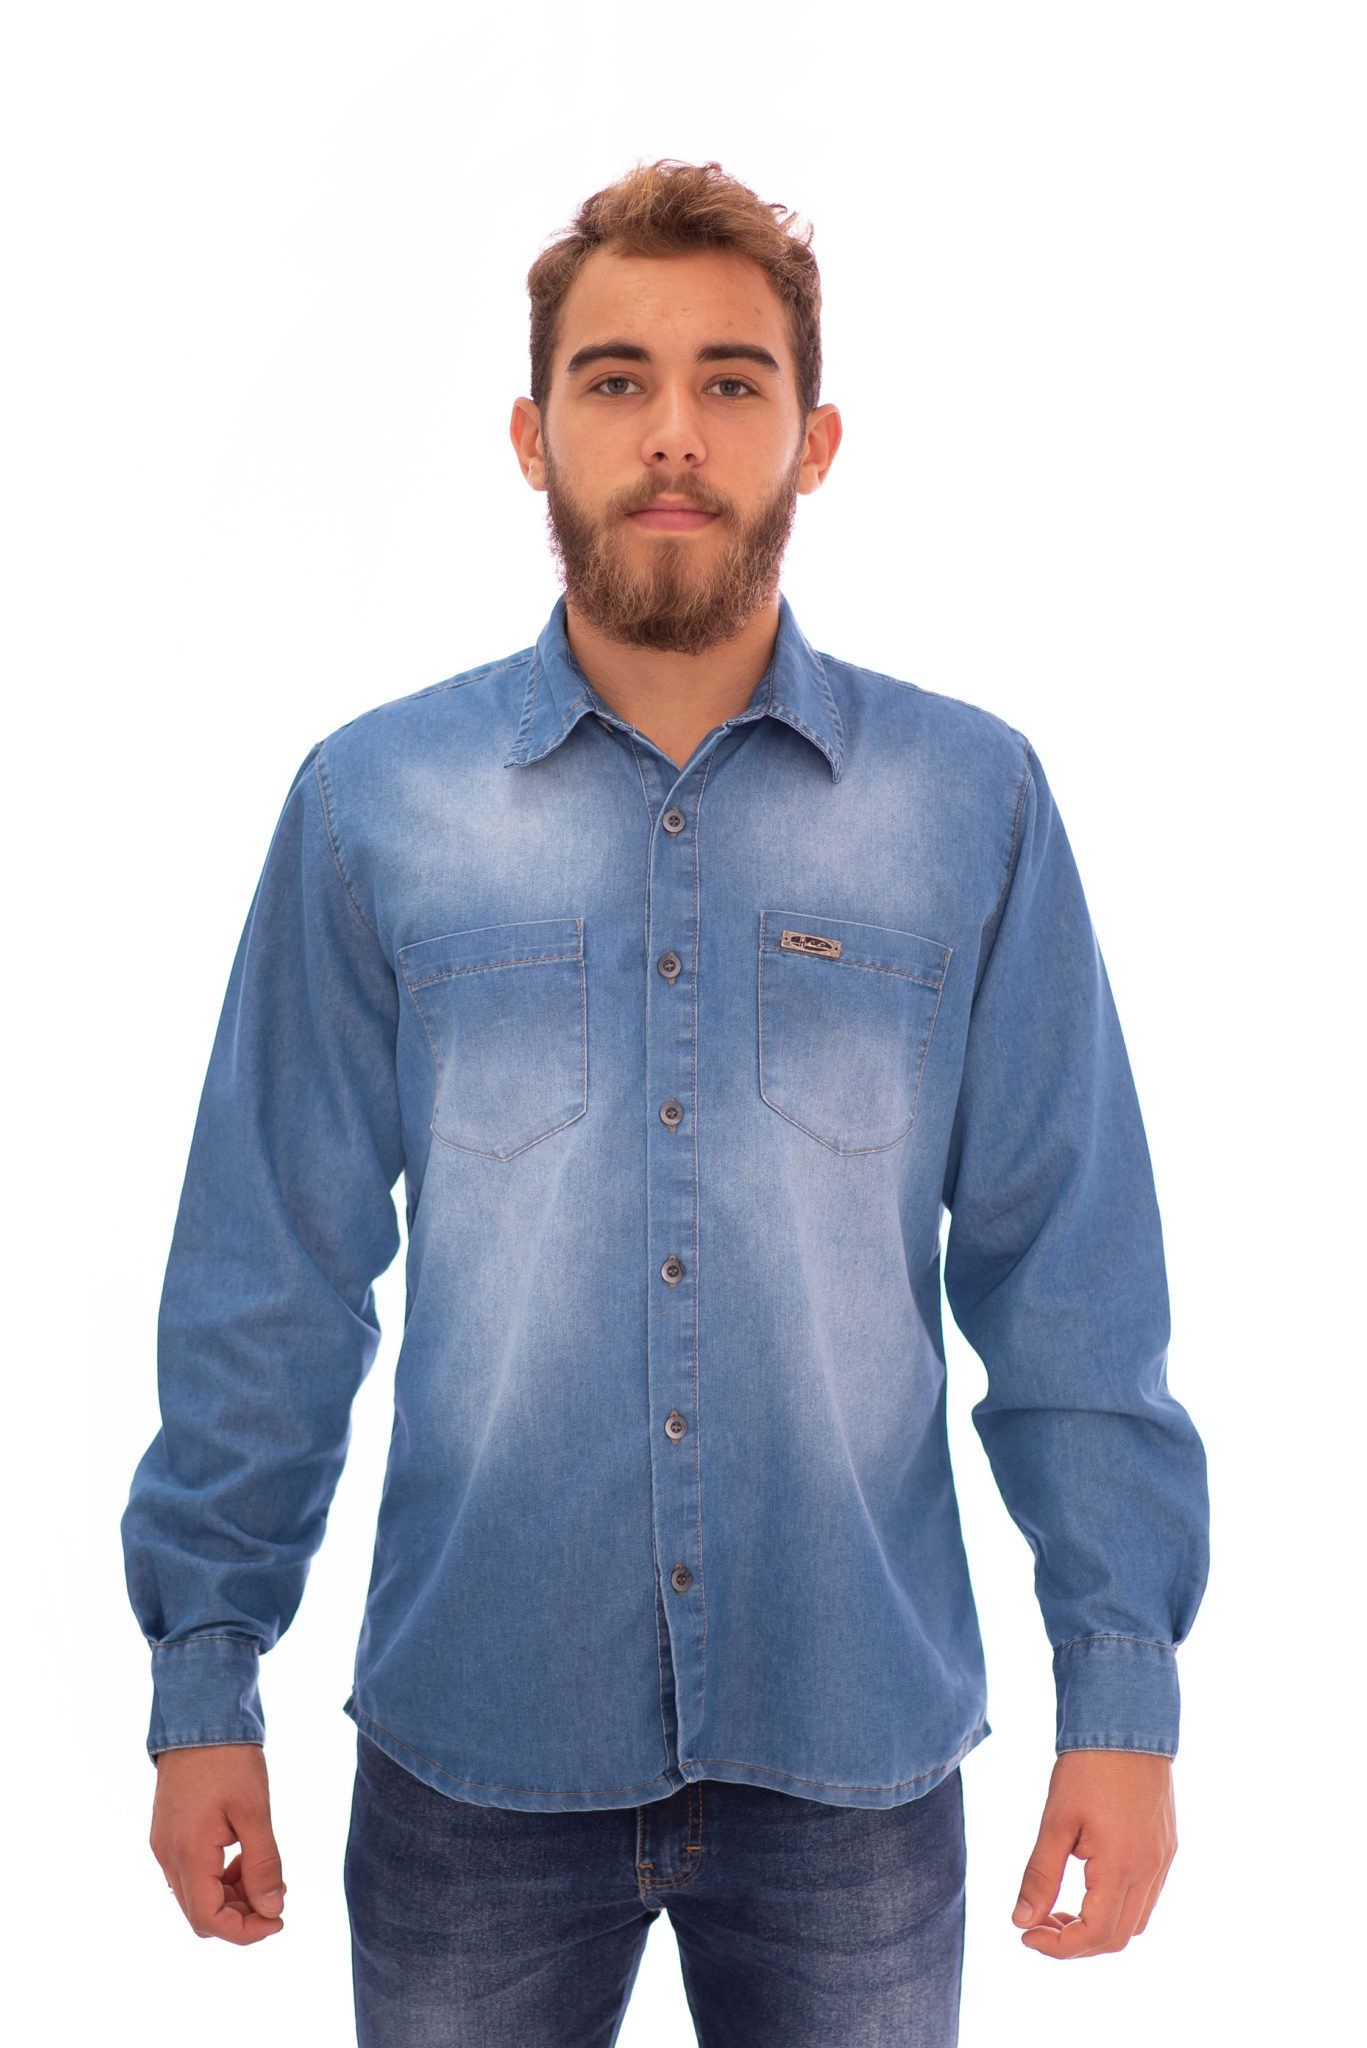 CAMISA JEANS AEE MASCULINA REF.406